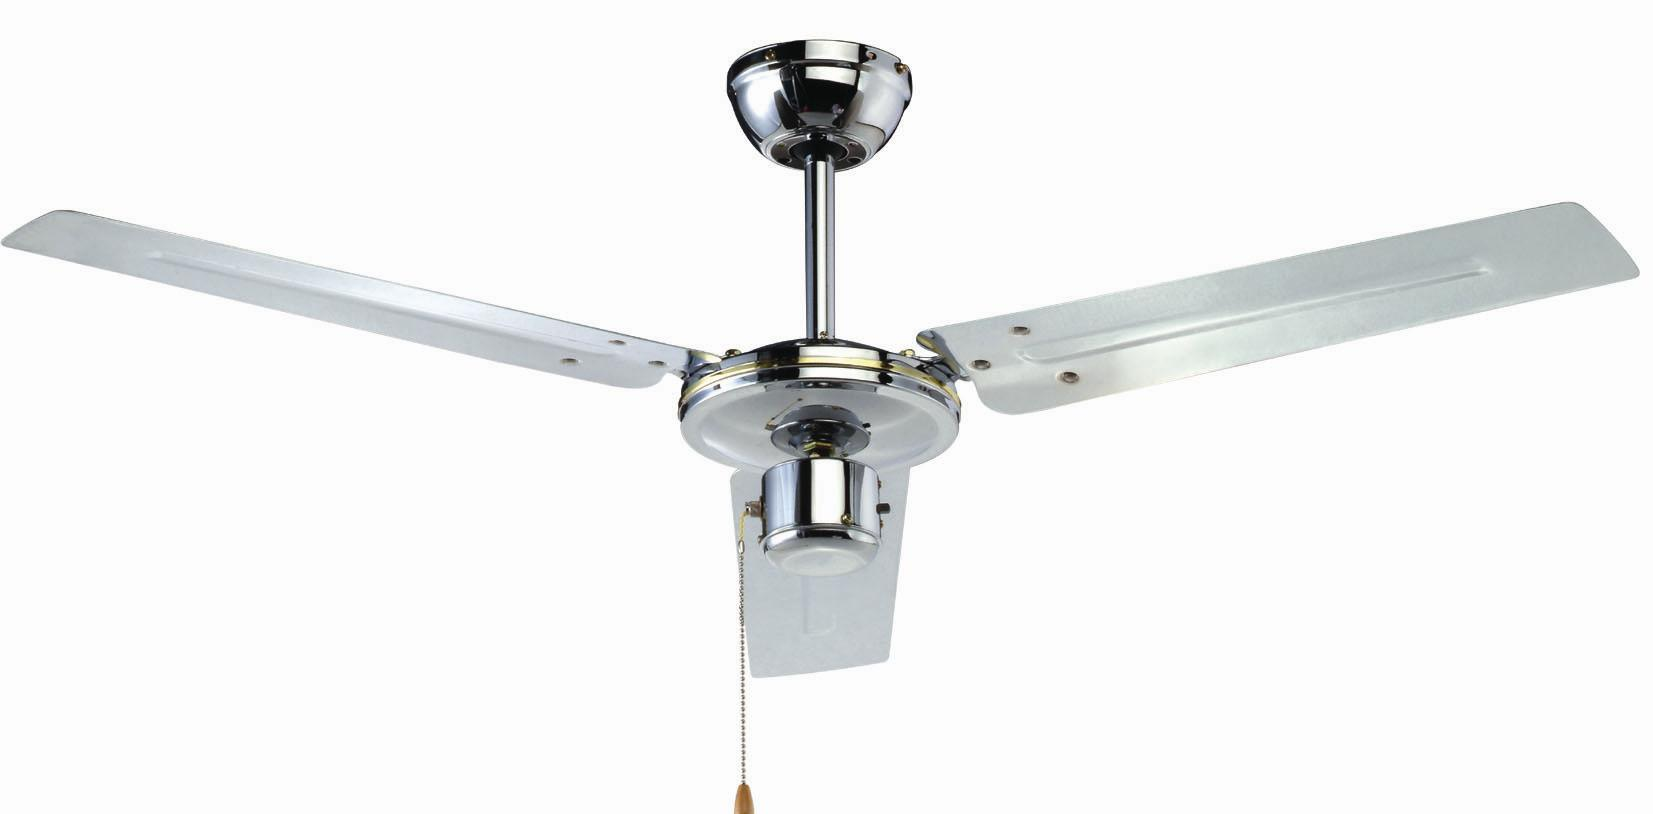 China 48 Industrial Ceiling Fan K48005 Xy China Fan